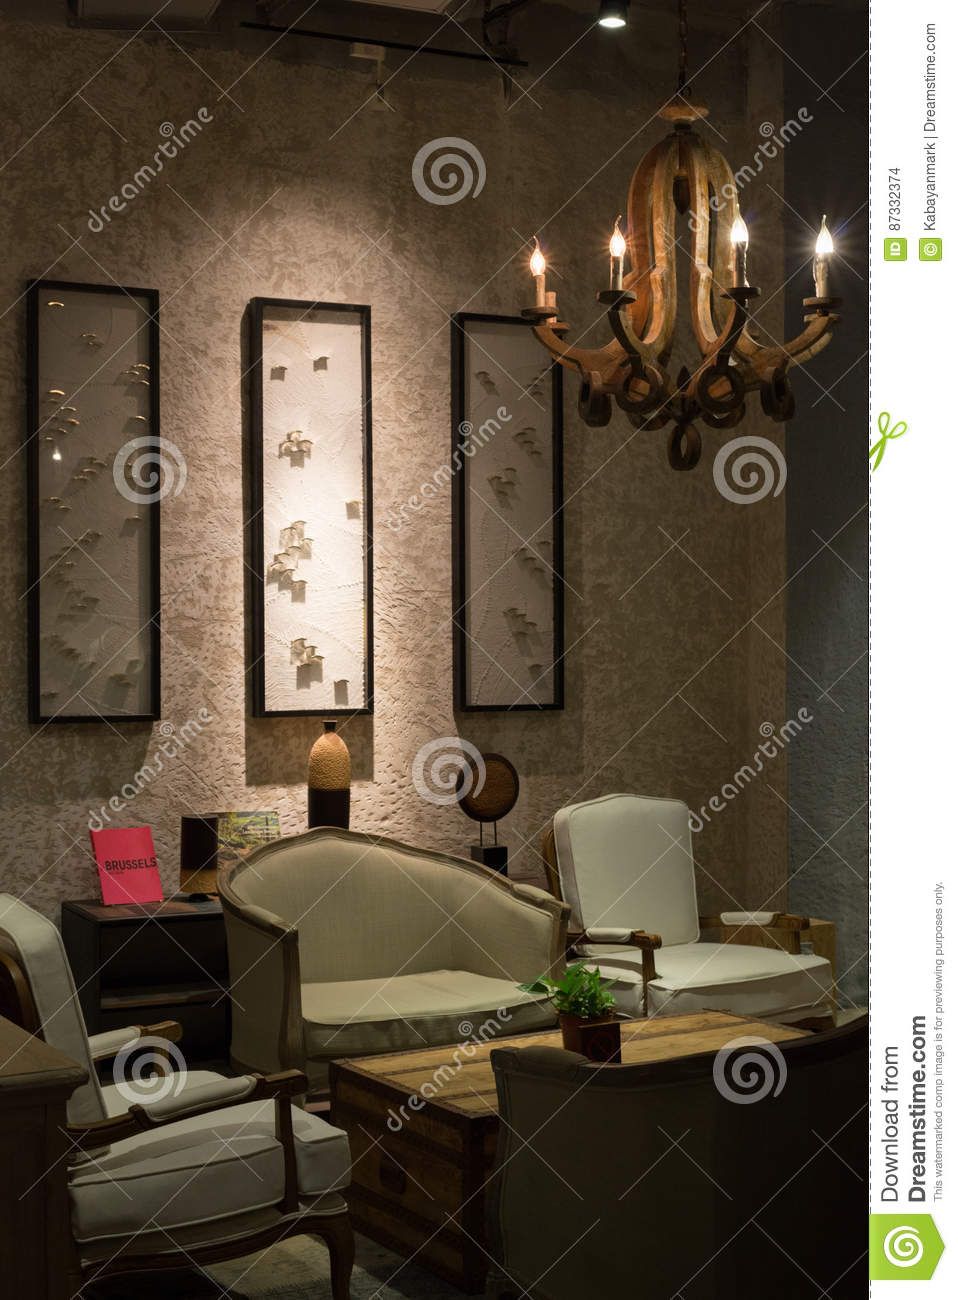 Lounge In Style   Historic Style Sofa And Interior Decoration Editorial  Stock Image